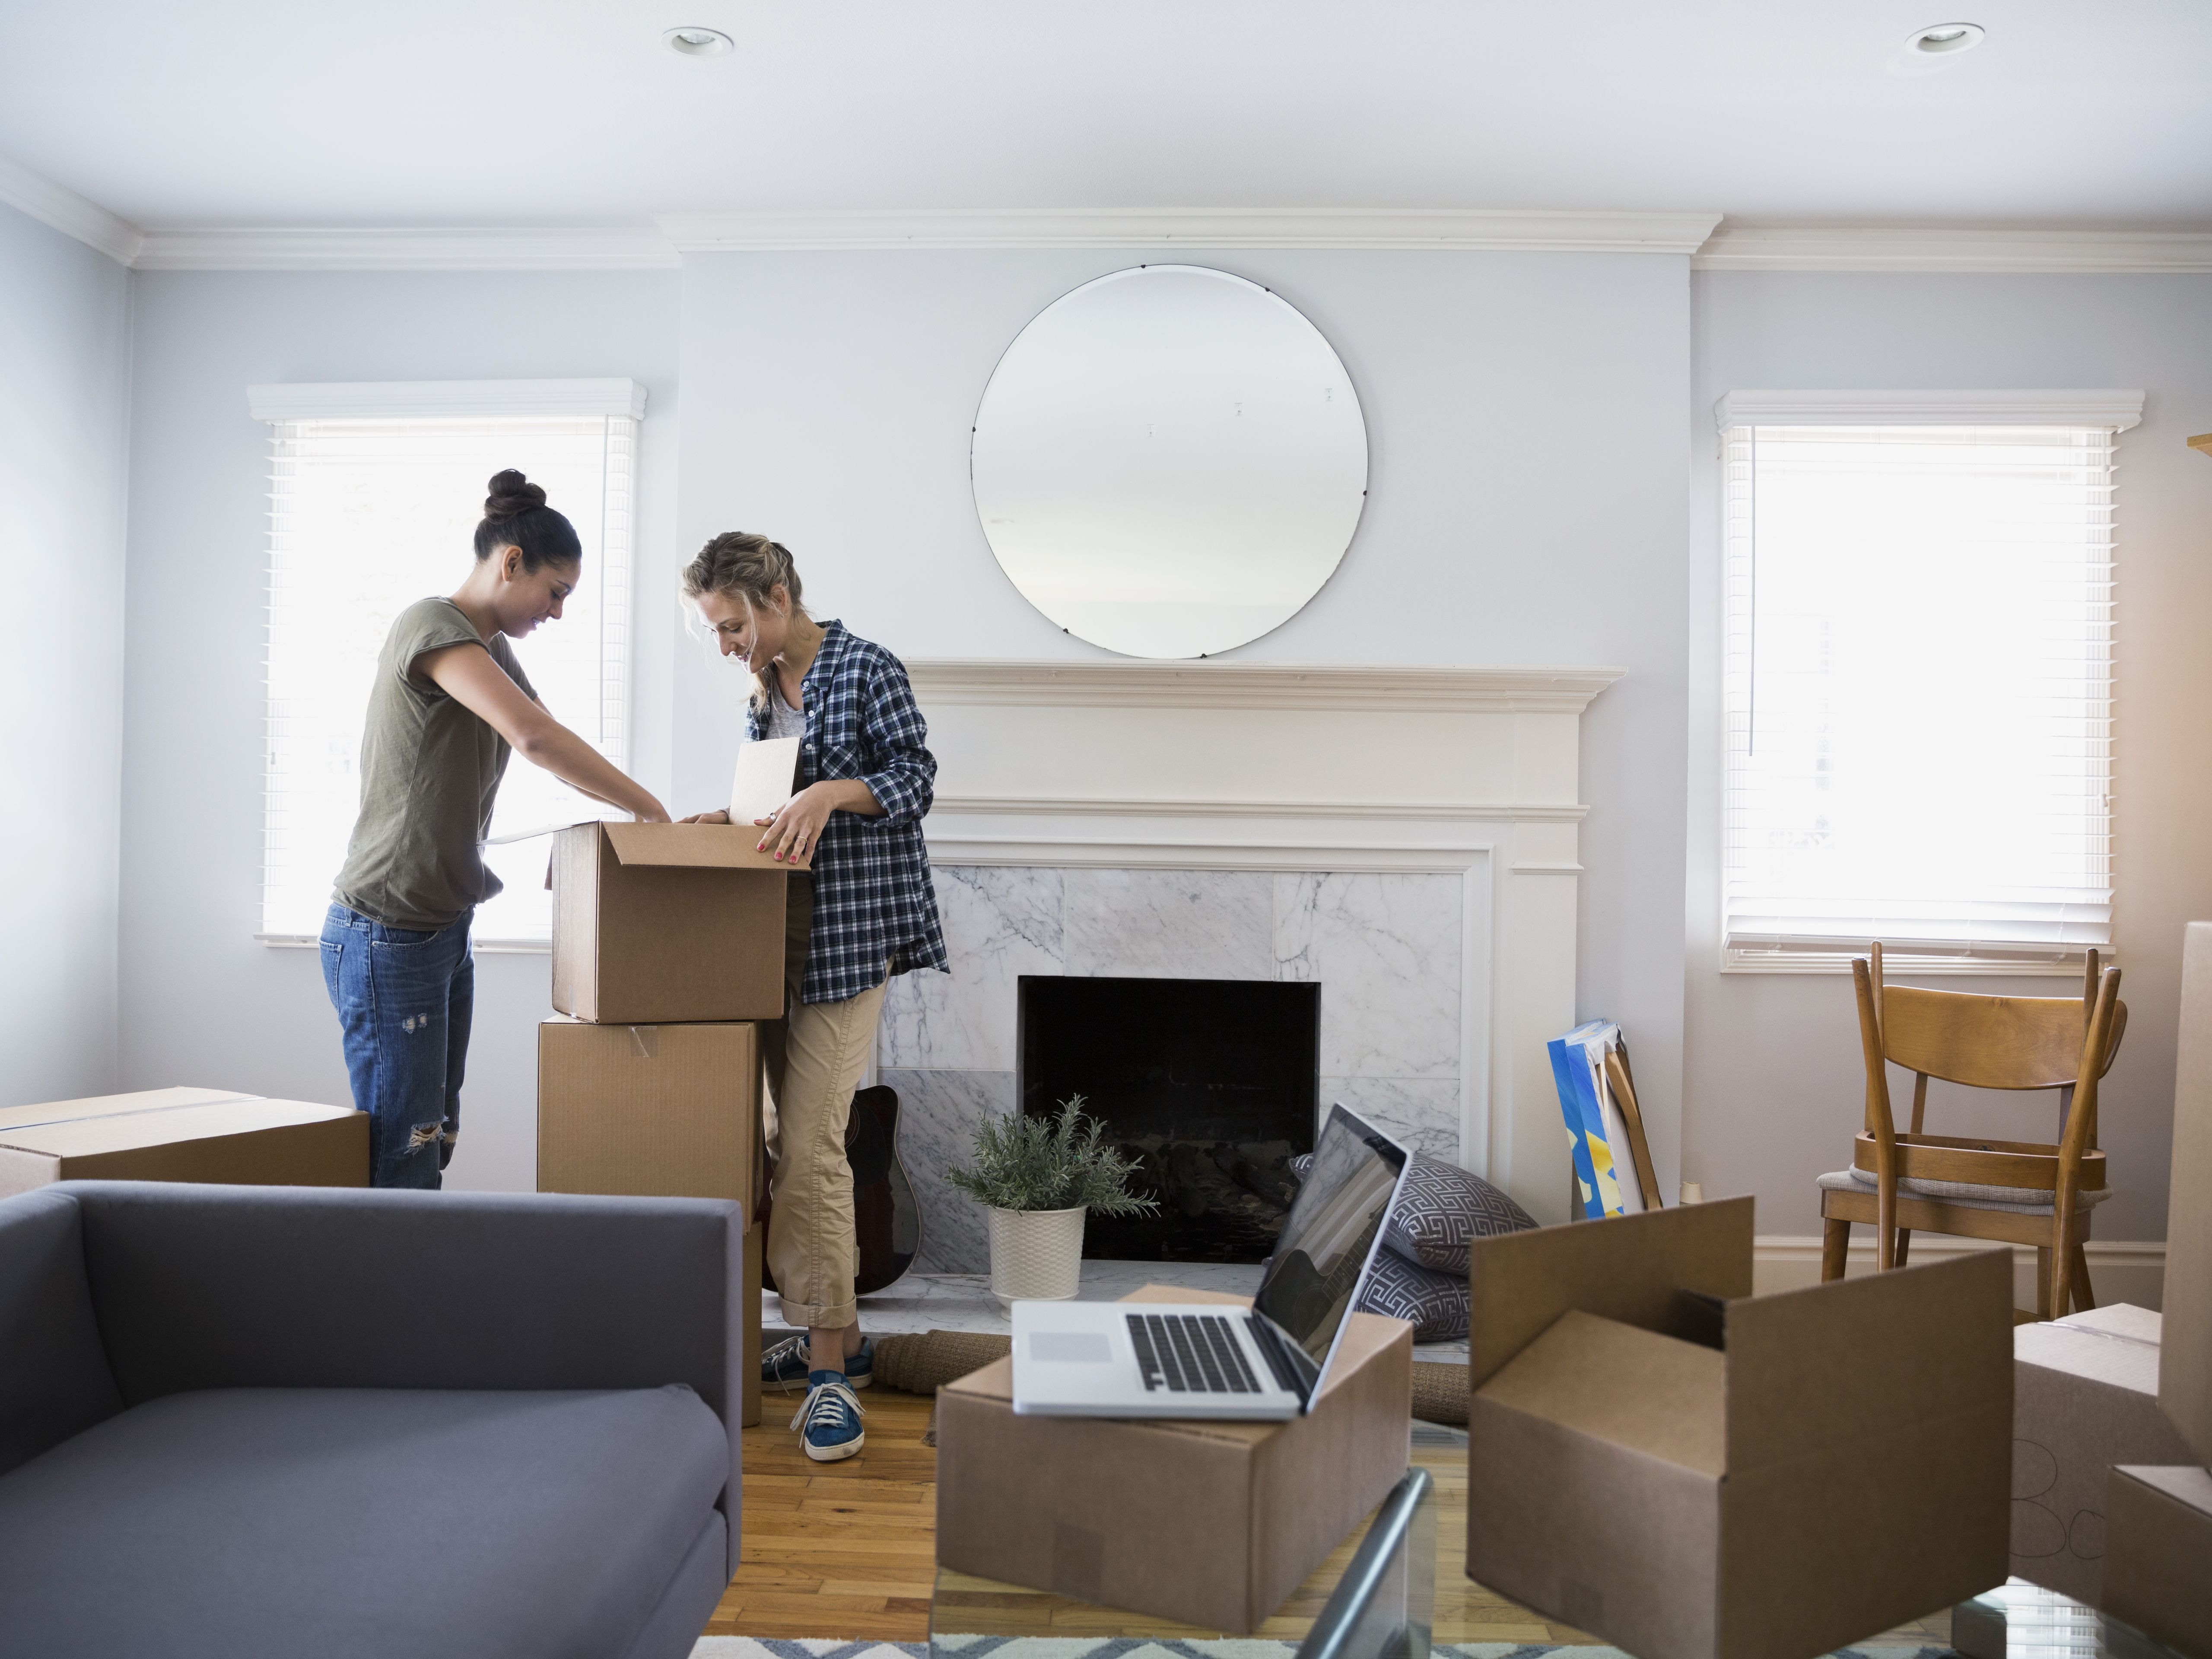 7 Questions To Ask Yourself Before Ing Your First Home